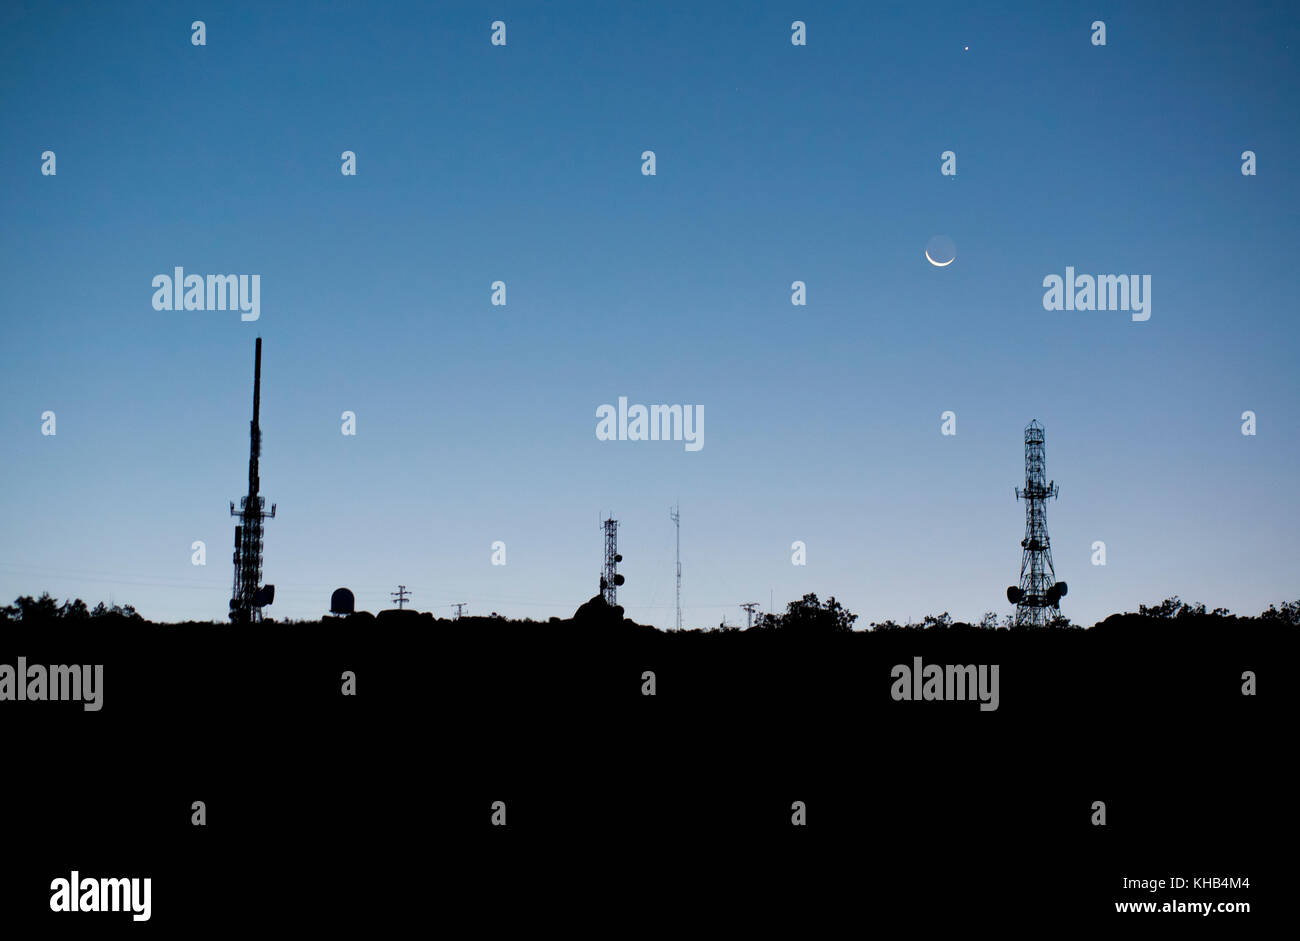 Broadcast relay station antennas at rising. Moon and the planets Venus and Mars form a conjunction in the sky just - Stock Image